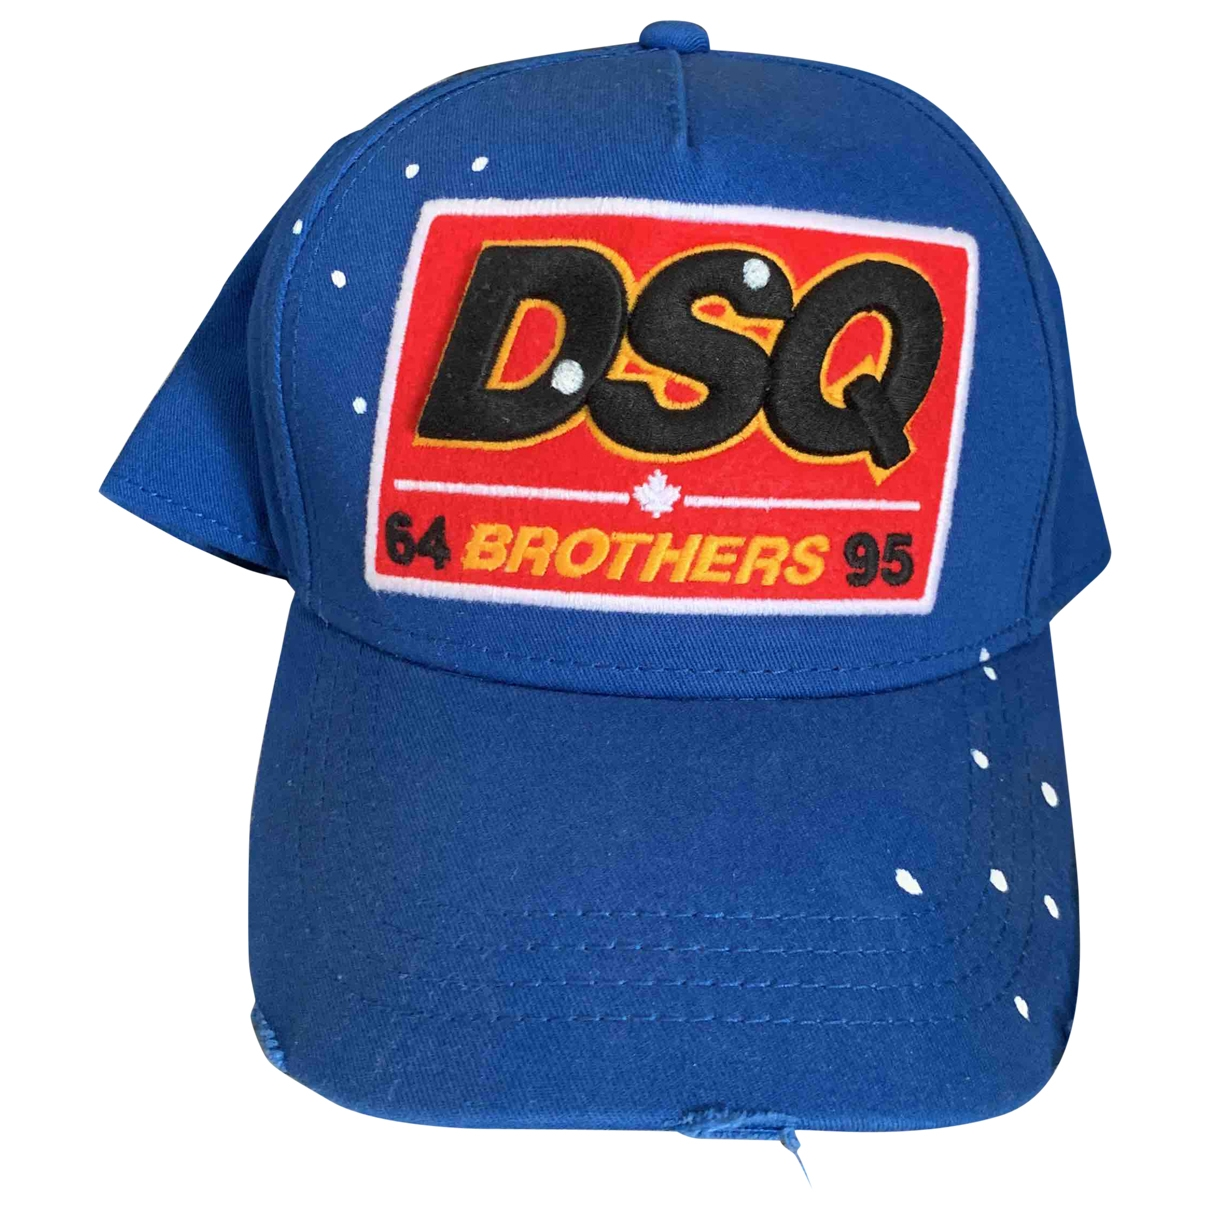 Dsquared2 \N Blue Cotton hat & pull on hat for Men M International